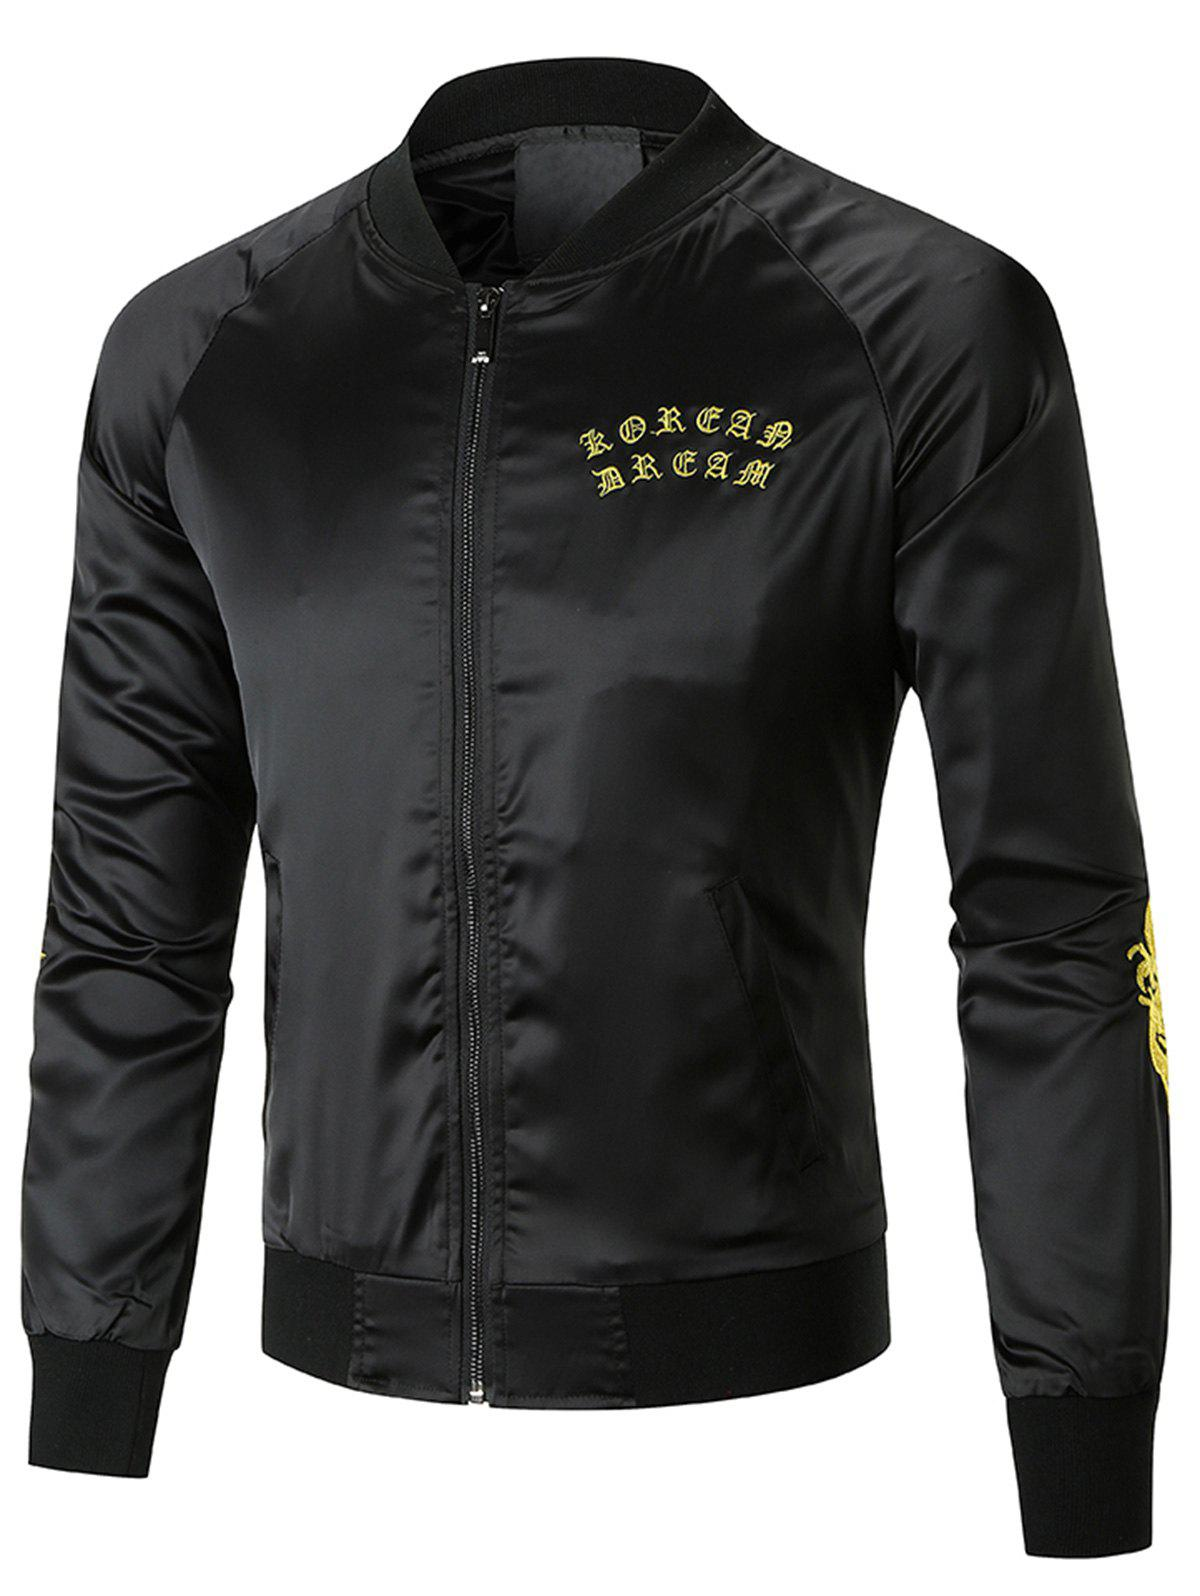 Hot Dragon Embroidered Bomber Jacket